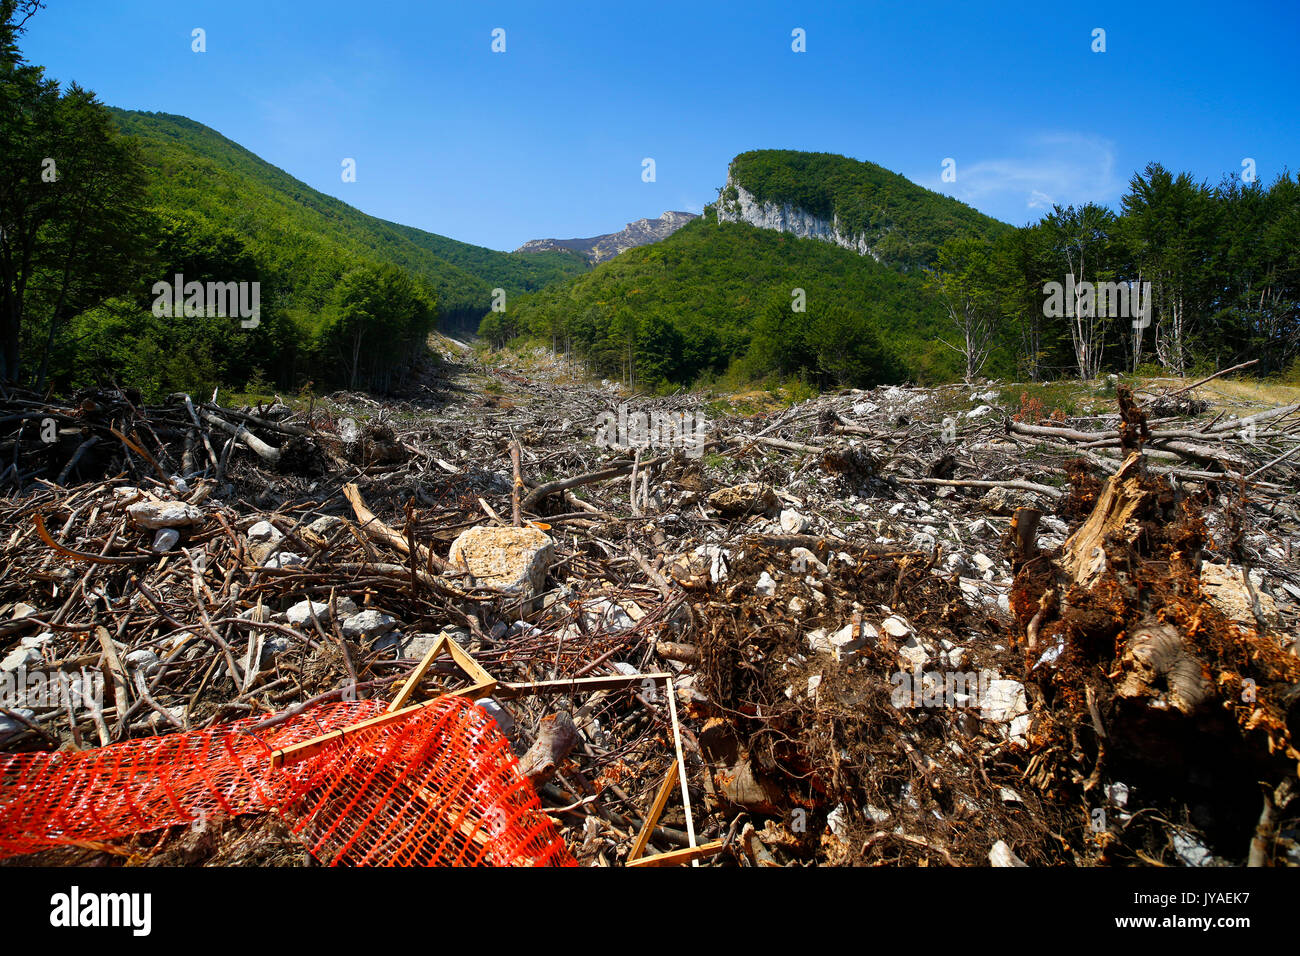 The trail of destruction leading to Hotel Rigopiano near Farindola in Italy, after an avalanche destroyed the hotel killing 29 people in January 2017. - Stock Image